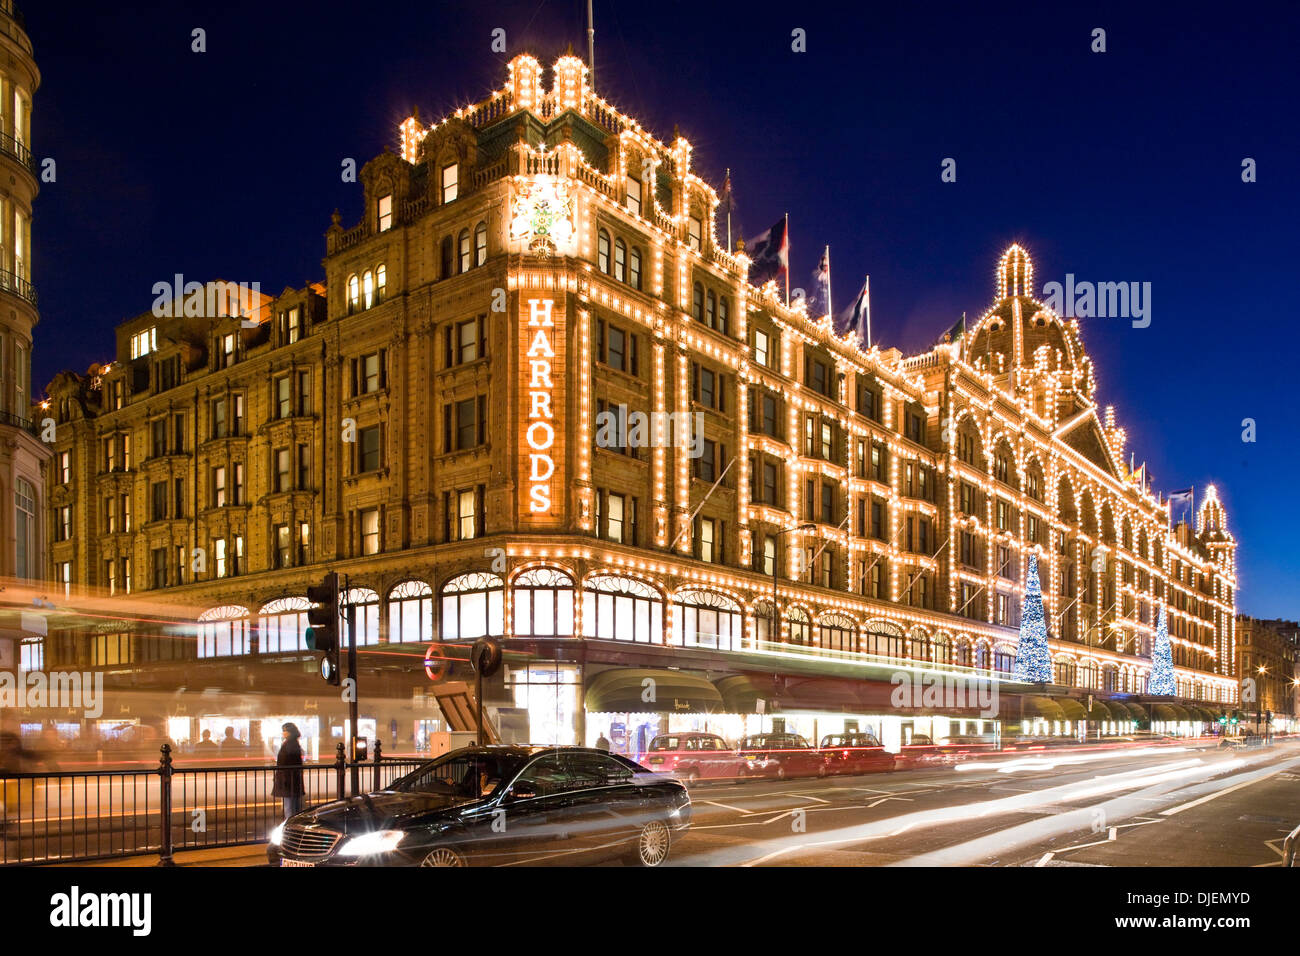 harrods london england uk long time exposure of harrods exterior stock photo 63018689 alamy. Black Bedroom Furniture Sets. Home Design Ideas